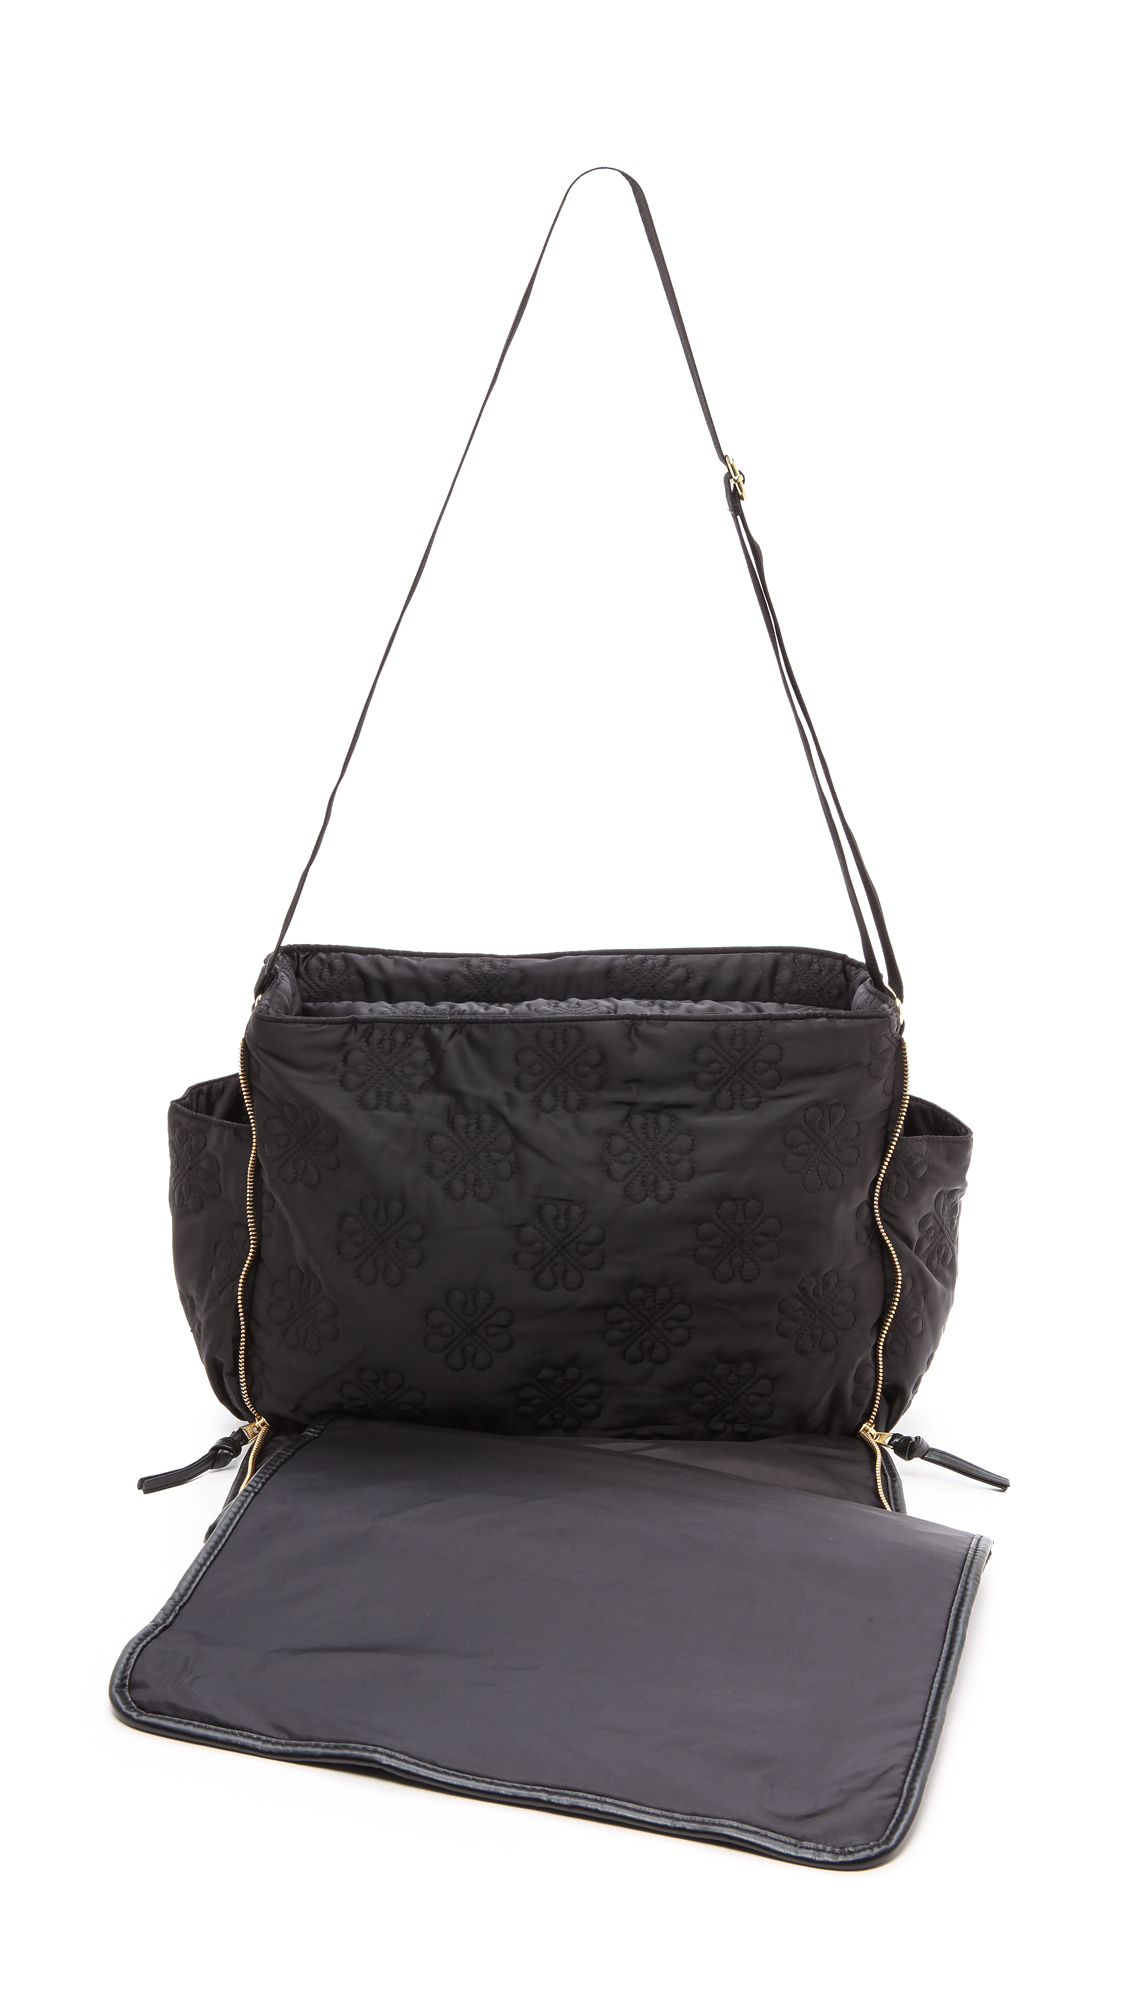 lyst day birger et mikkelsen day gweneth sign baby bag black in black. Black Bedroom Furniture Sets. Home Design Ideas